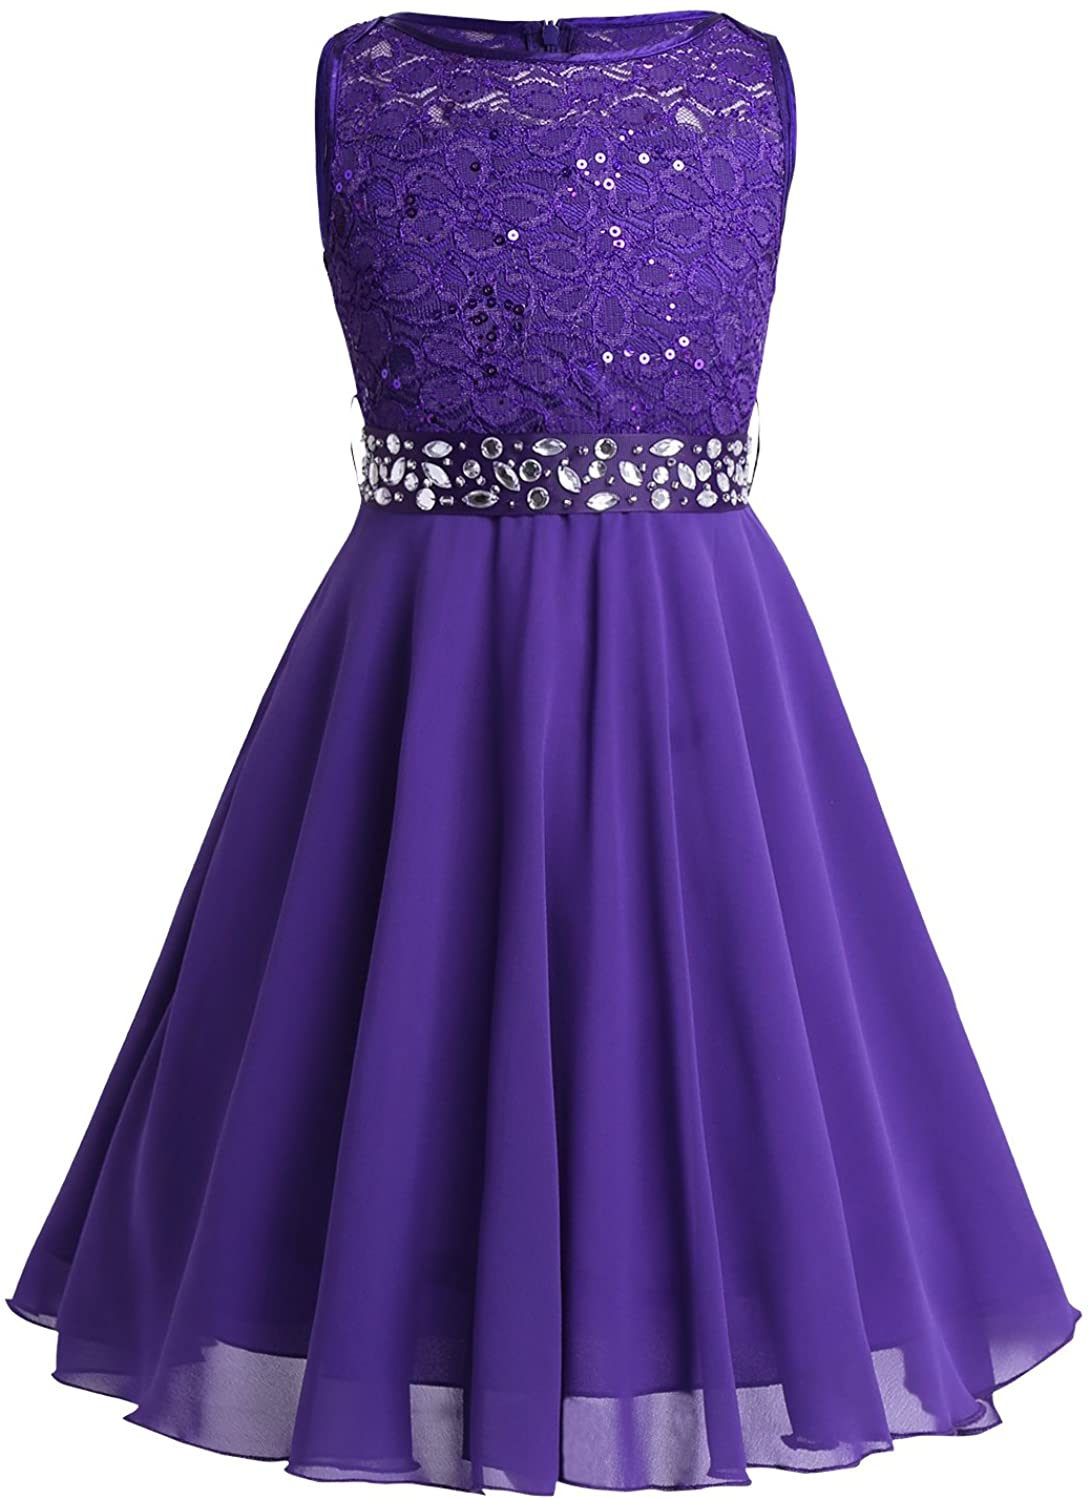 zdhoor Kids Floral Lace Flower Girls Dress Sleeveless Princess Wedding Pageant Party Gowns with Sequined Belt